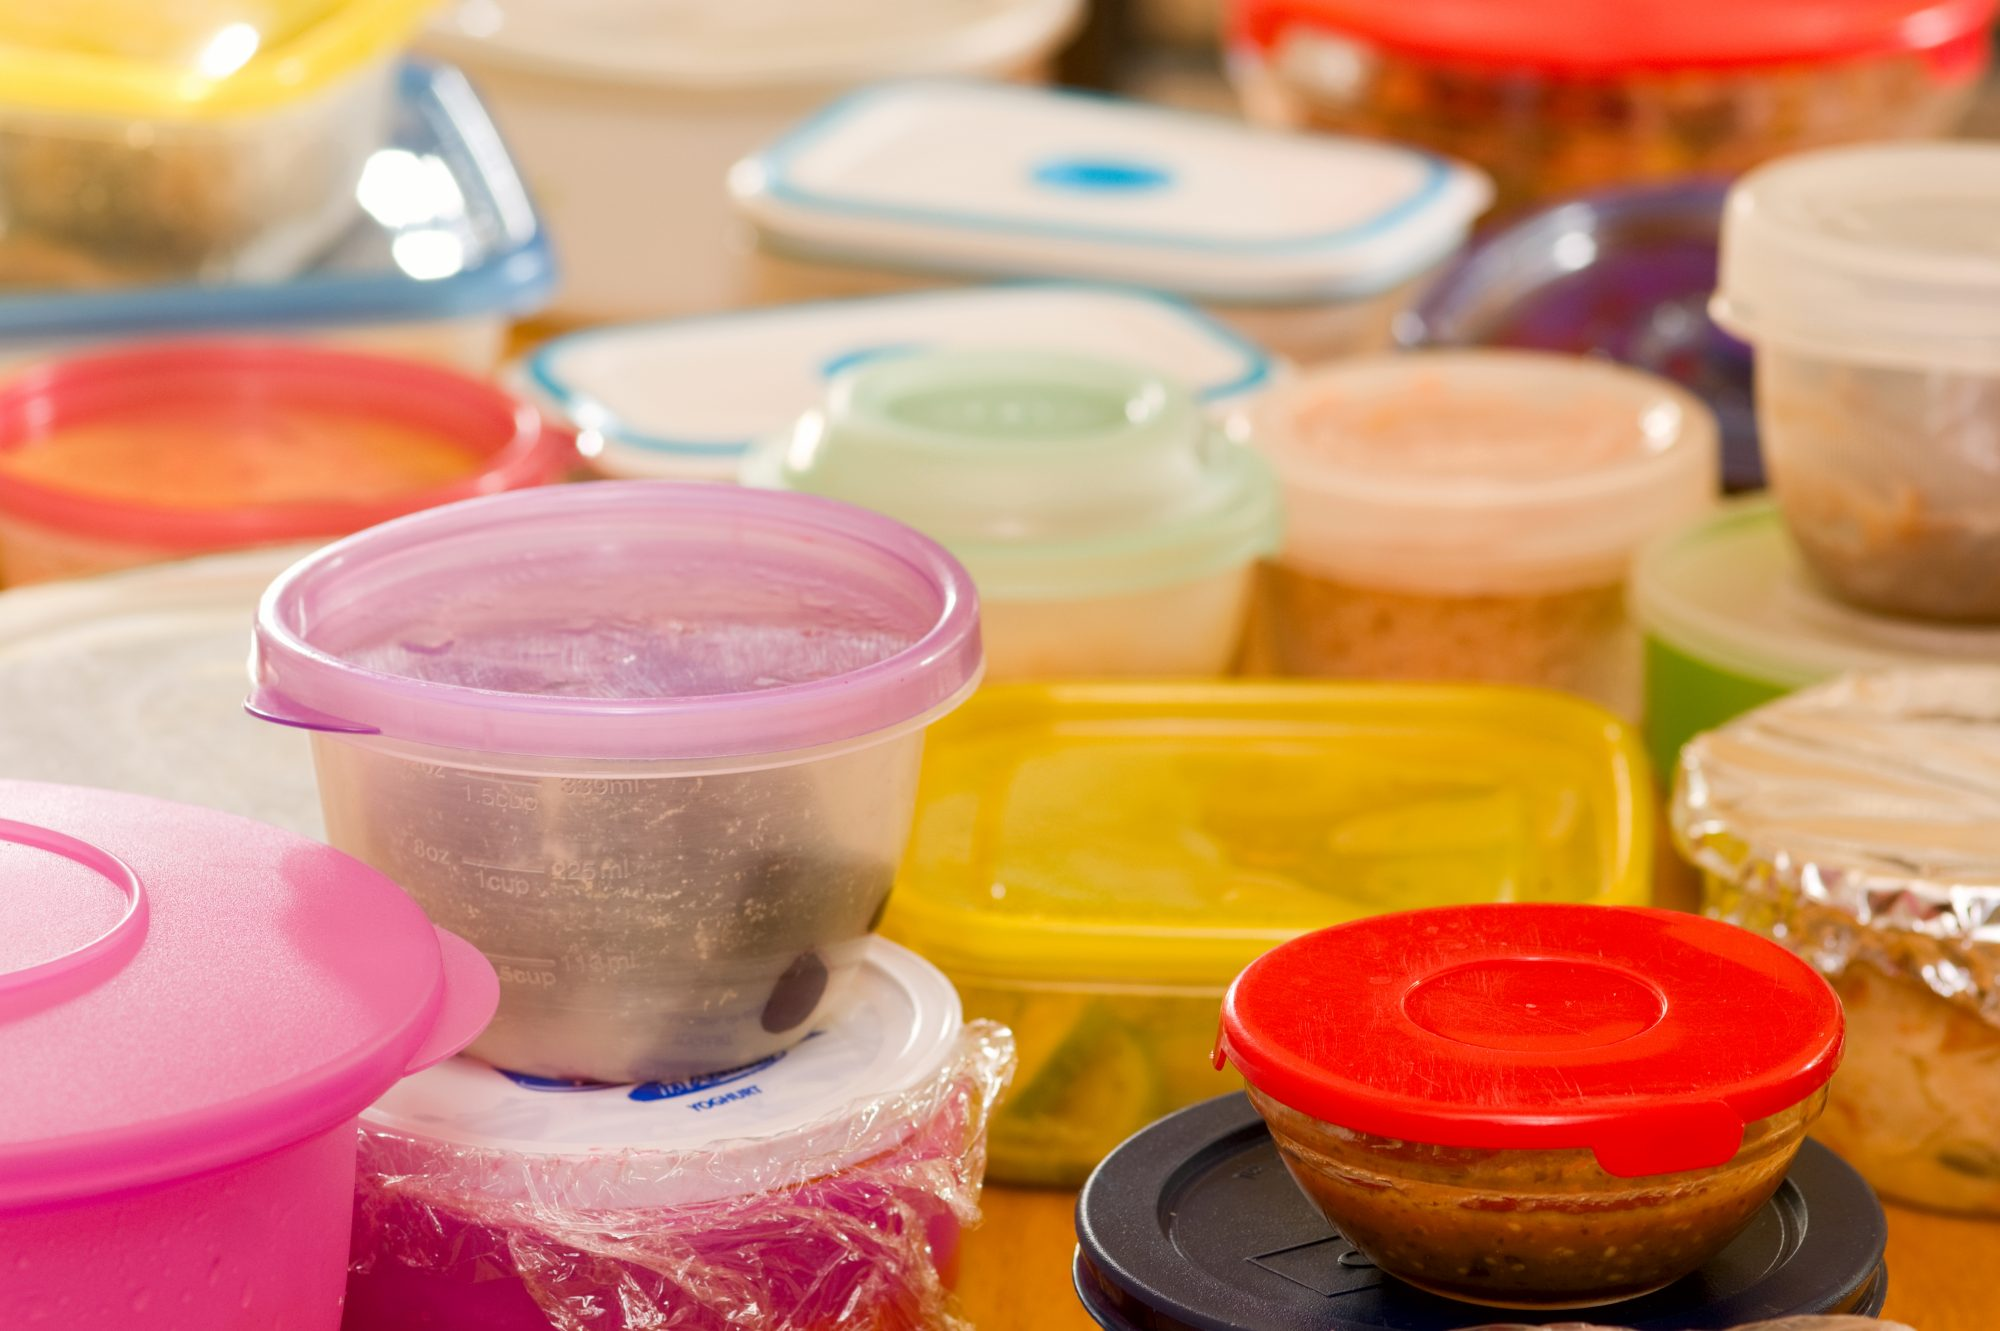 getty-plastic-containers-image